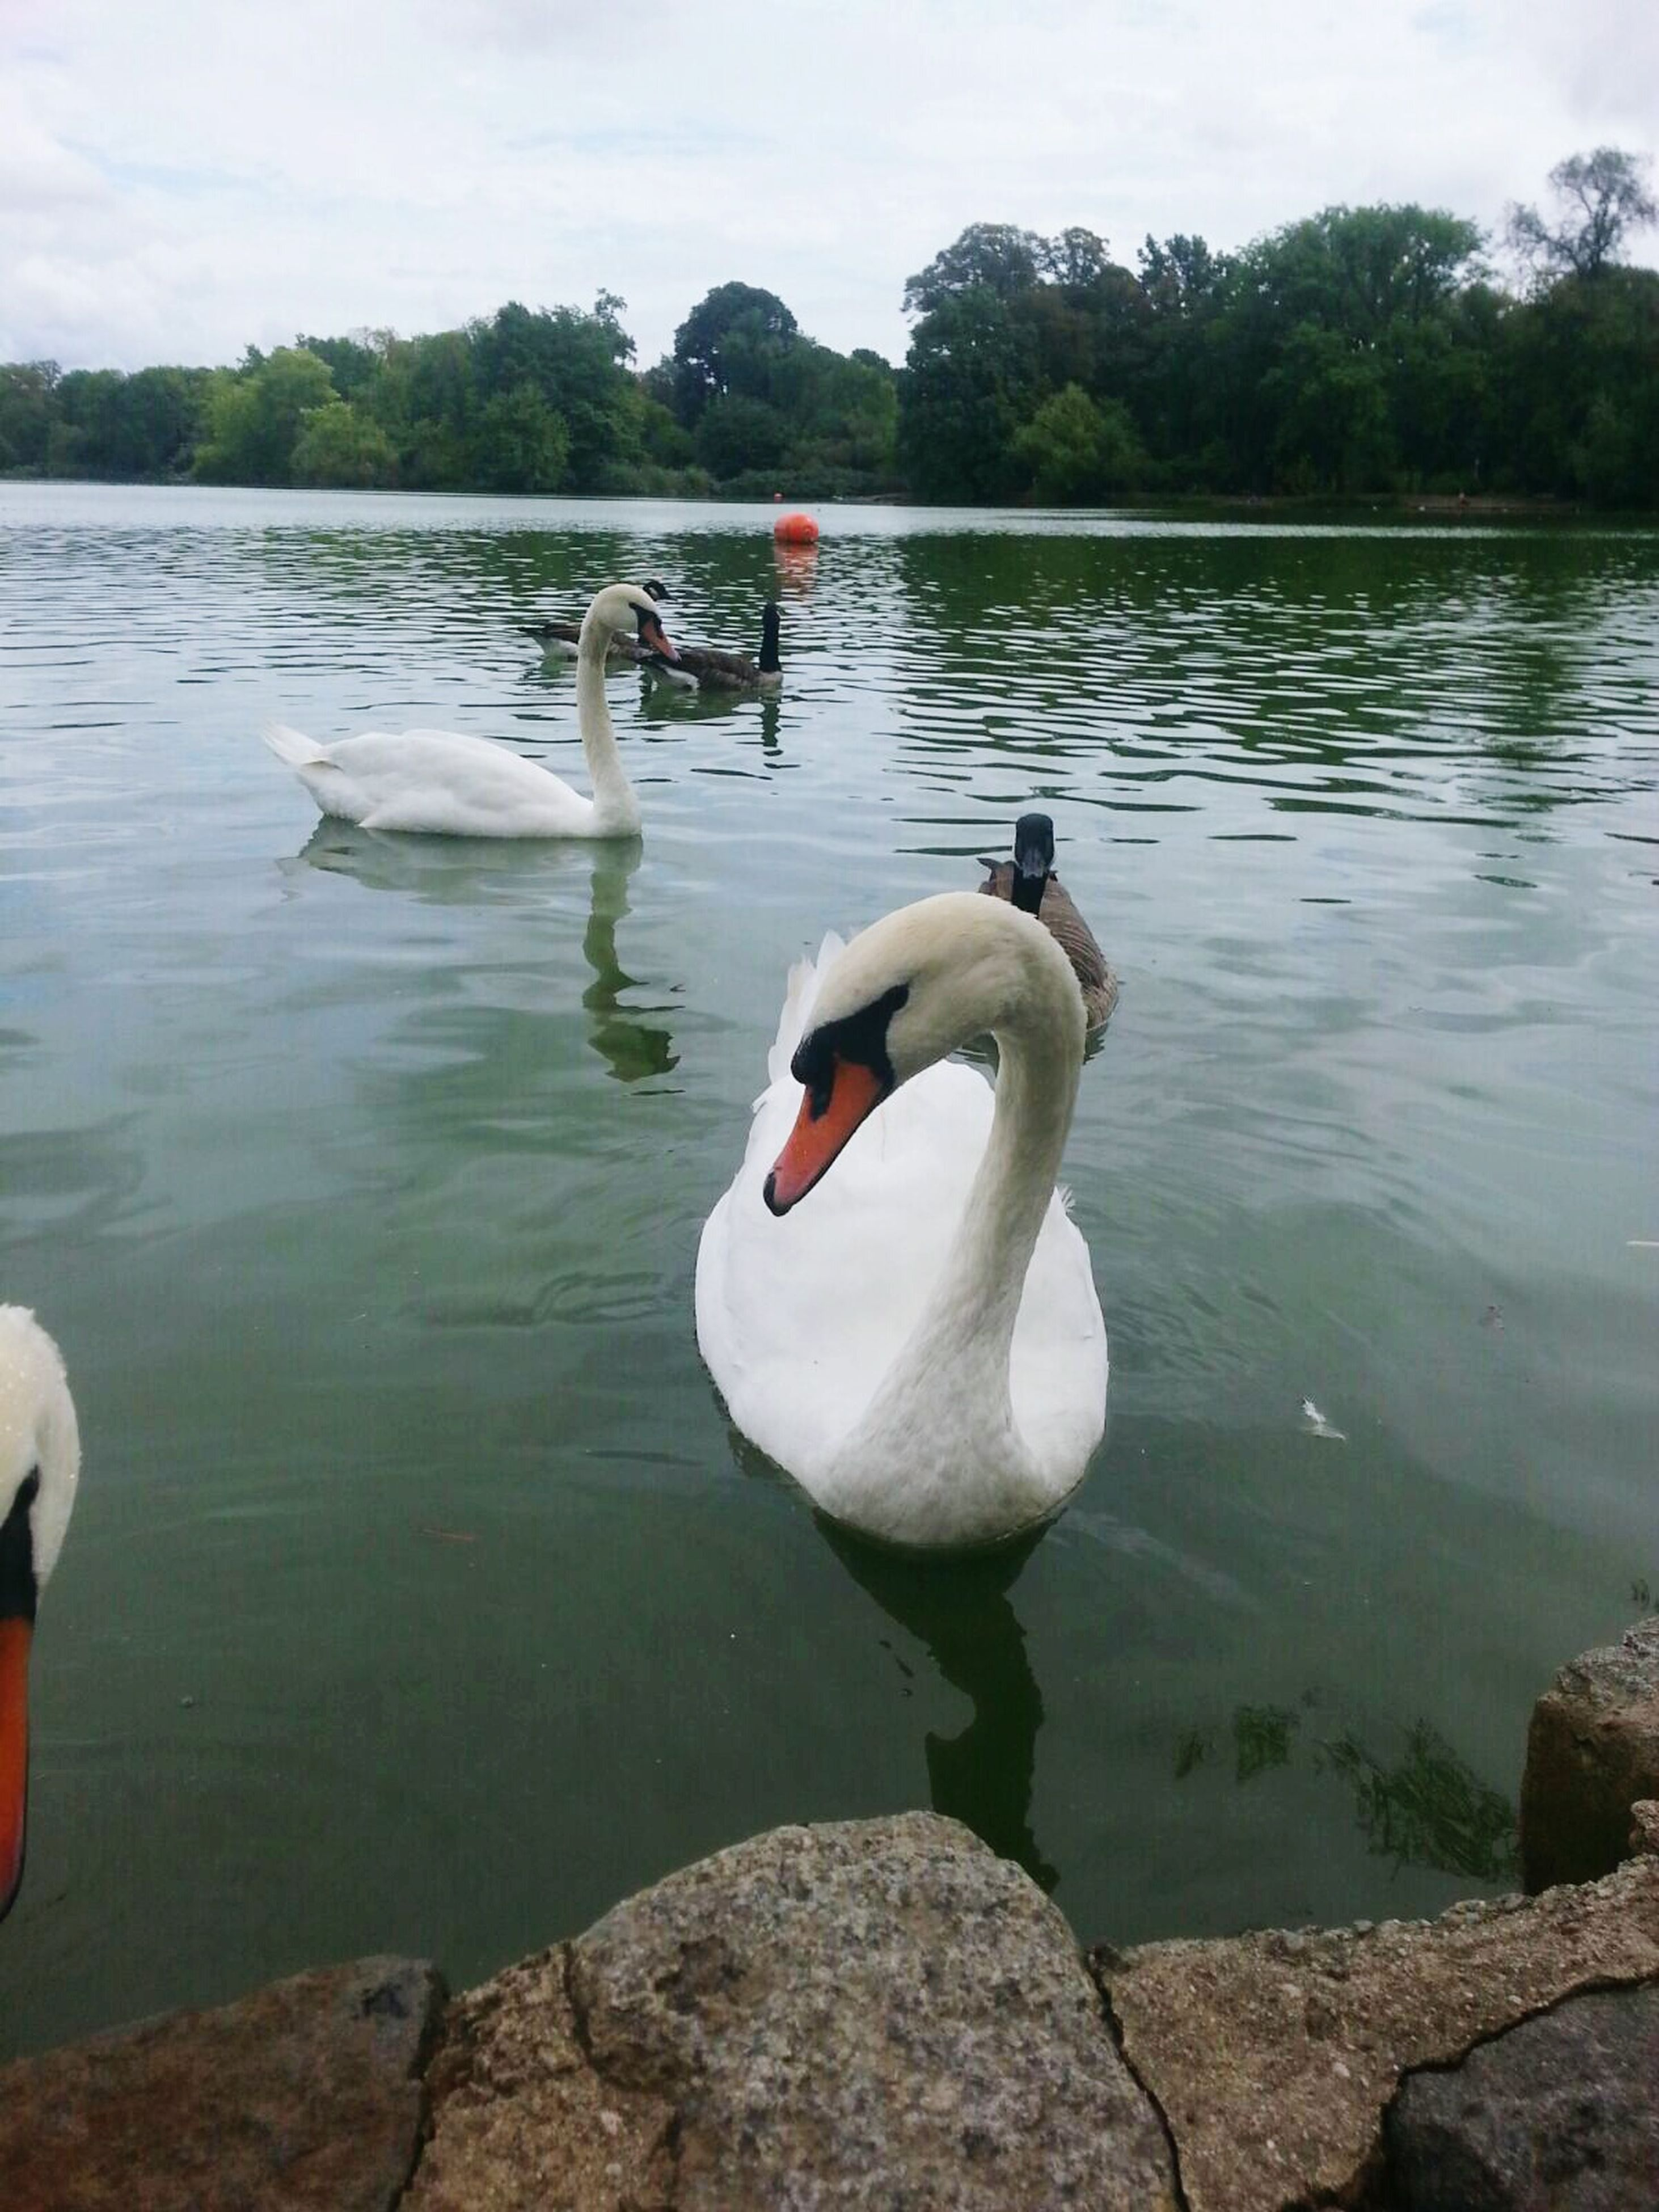 swan, lake, bird, animal themes, swimming, water, tranquil scene, water bird, animals in the wild, nature, floating on water, outdoors, day, togetherness, no people